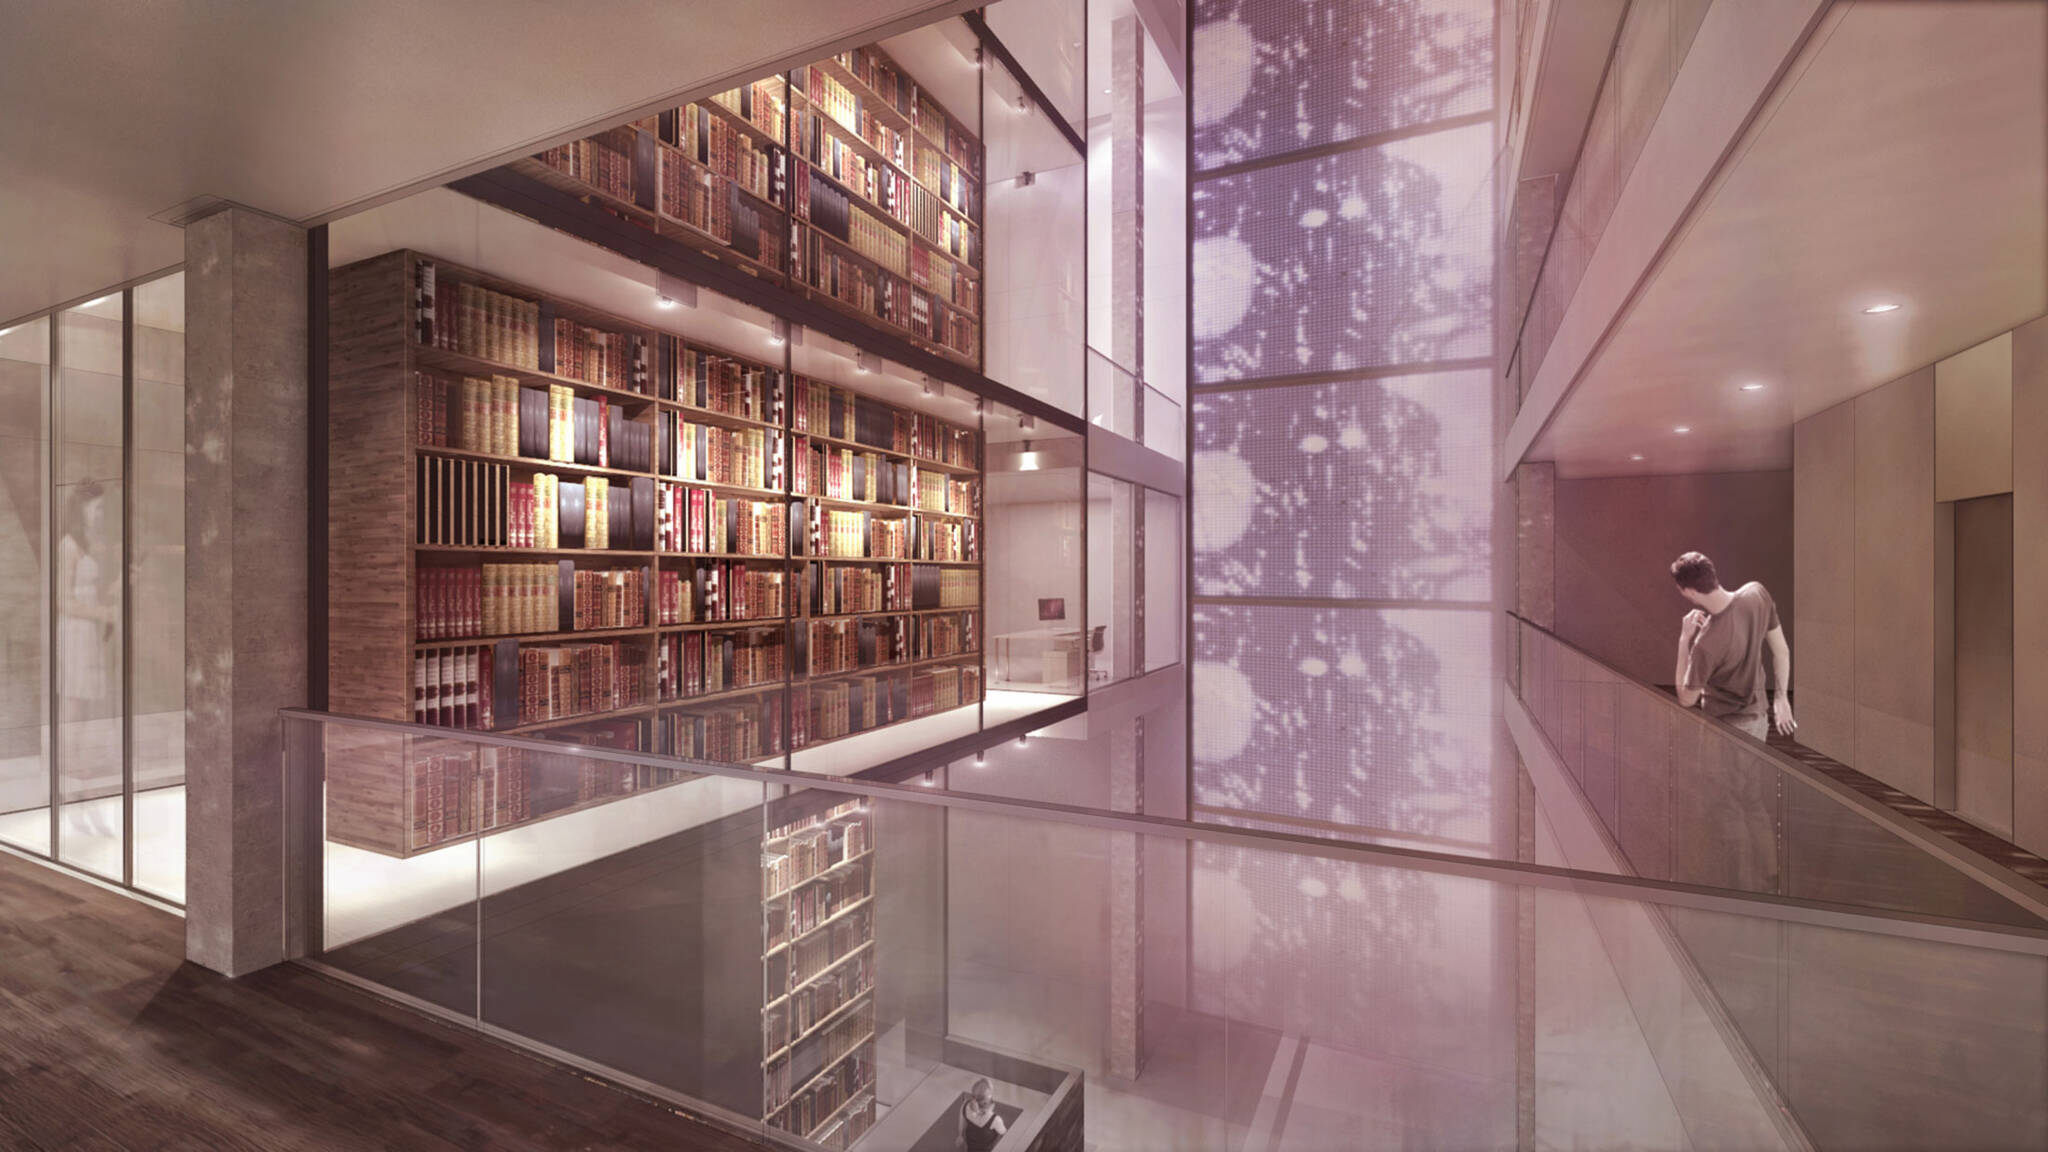 Video installation on the Bible Atrium of the American Bible Society project located at the Upper West Side, New York City designed by the architecture studio Danny Forster & Architecture